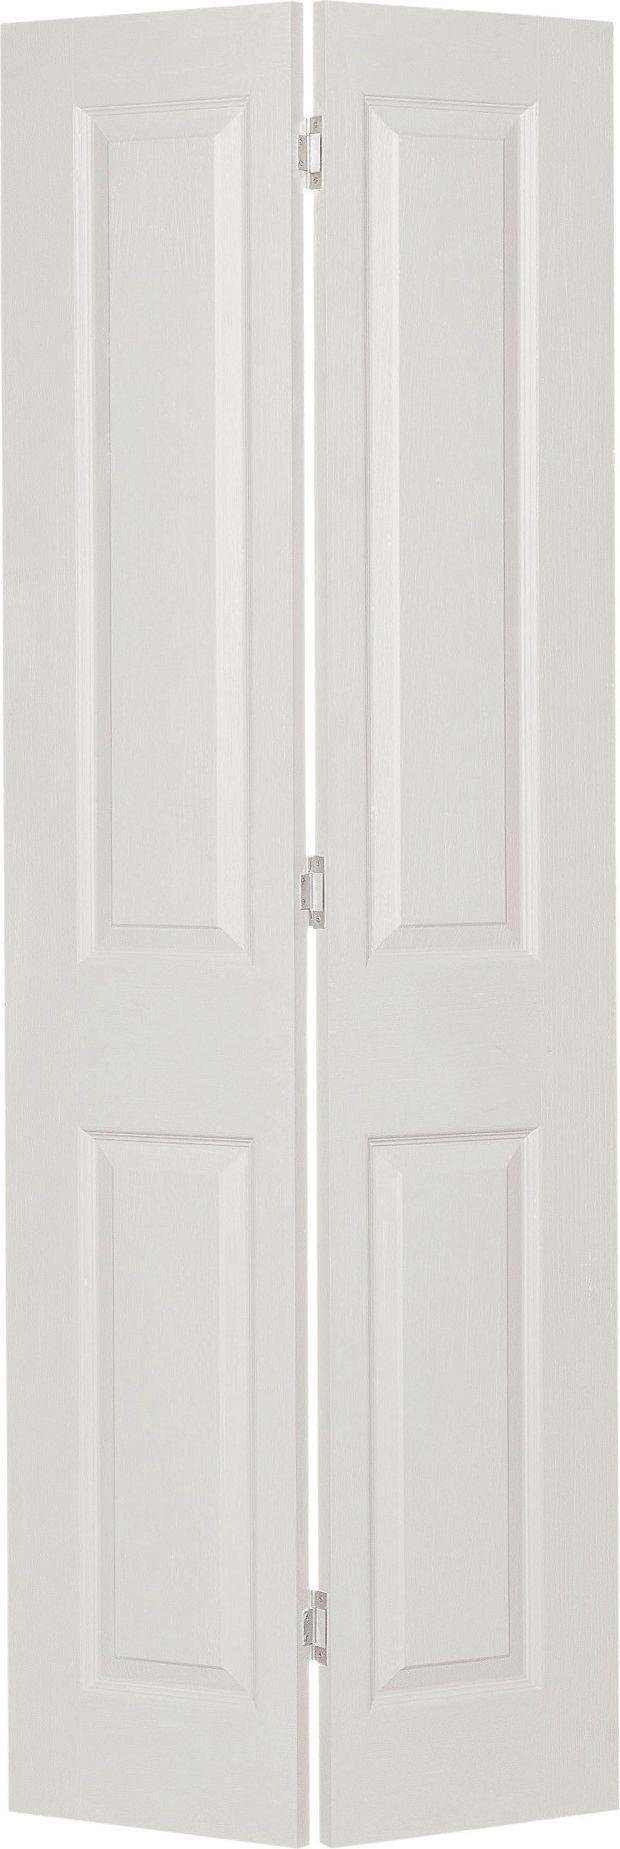 jeld-wen-4-panel-bi-fold-interior-door-1981-x-762mm